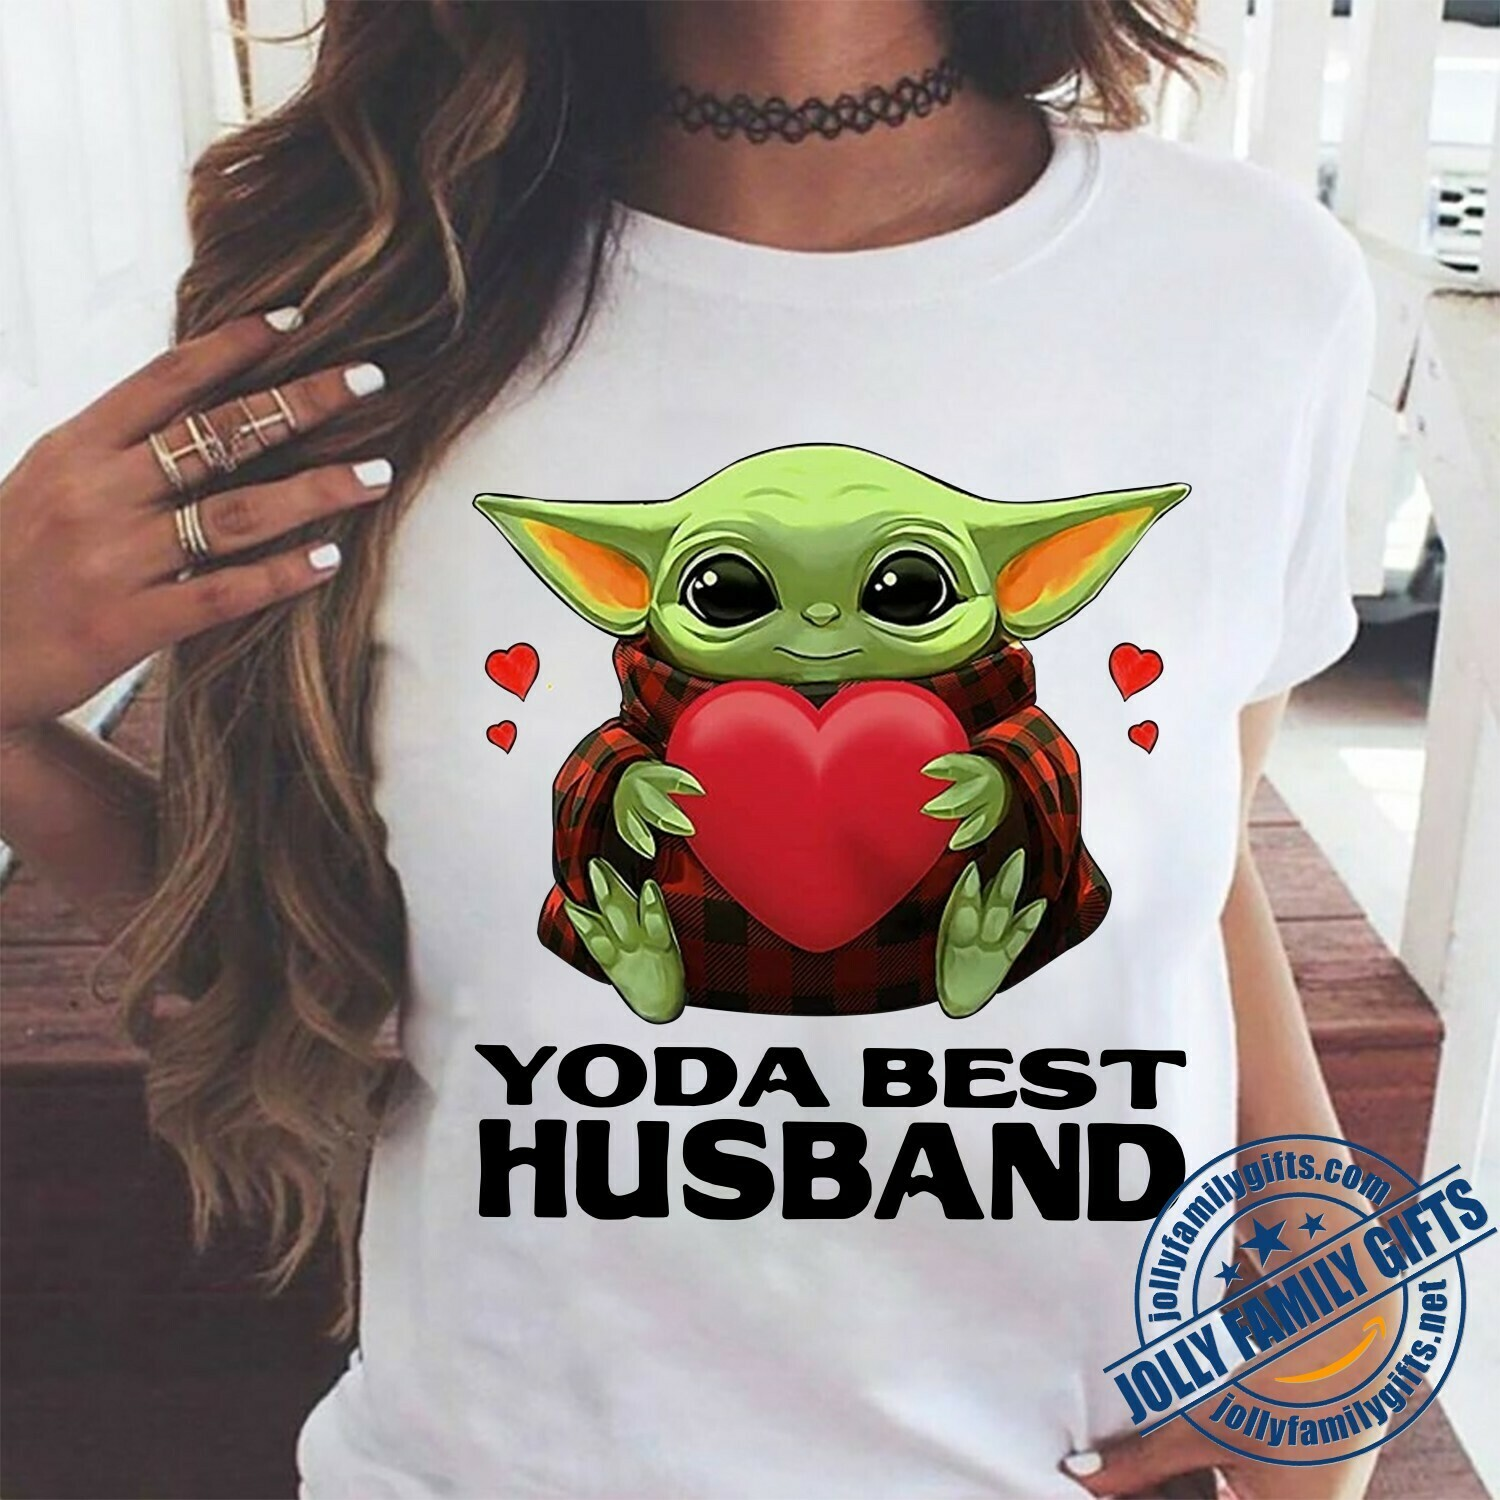 Baby Yoda The Mandalorian with death Star Wars Movie Yoda best Husband,Yoda Hug Heart Valentines Gift for him dady father Unisex T-Shirt Hoodie Sweatshirt Sweater for Ladies Women Men Kids Youth Gifts